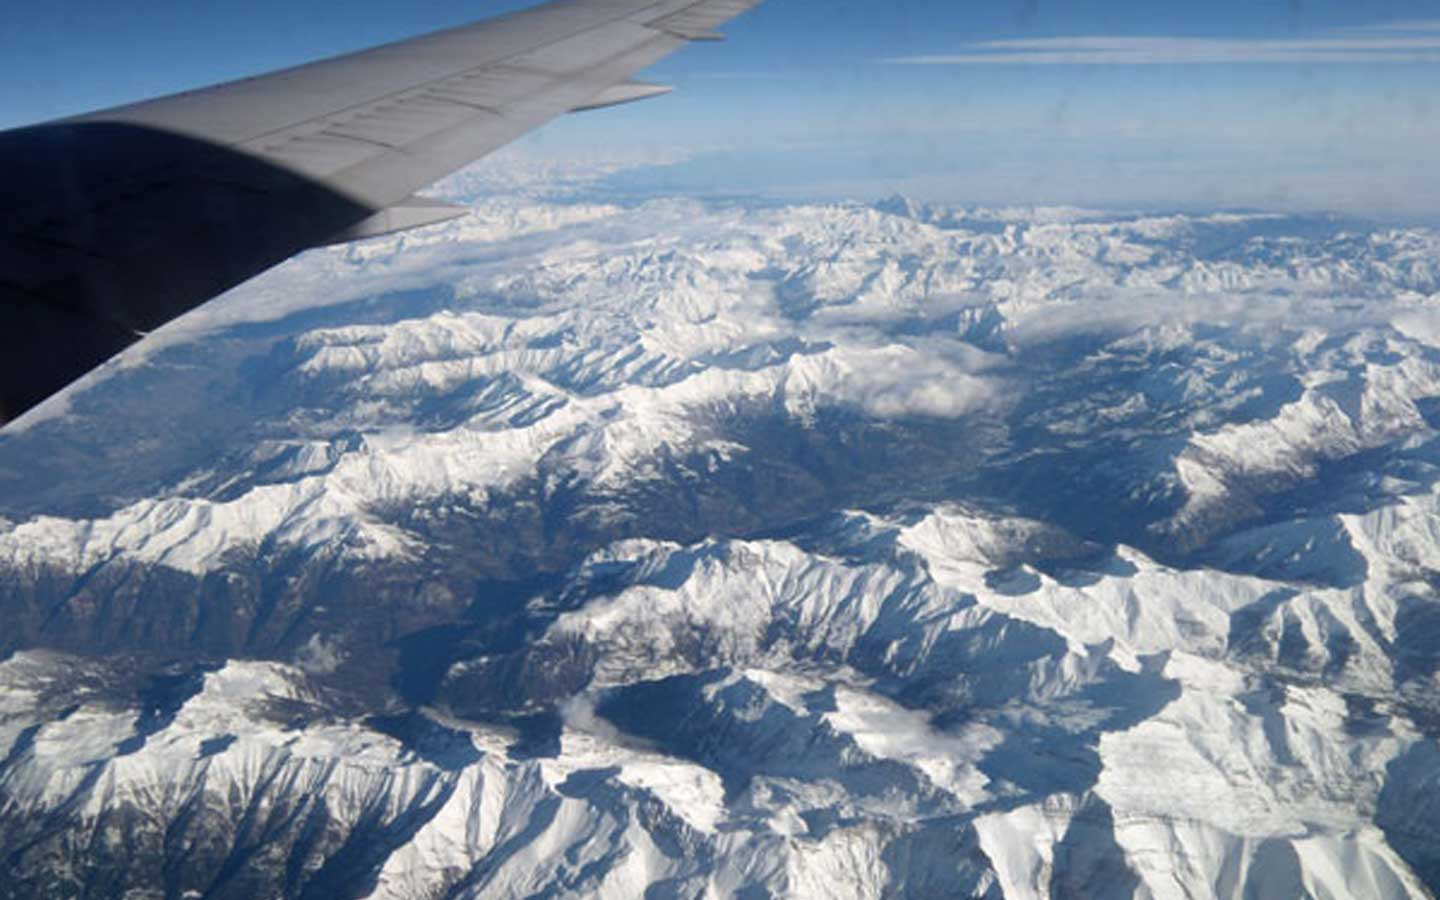 View of Alps from plane window